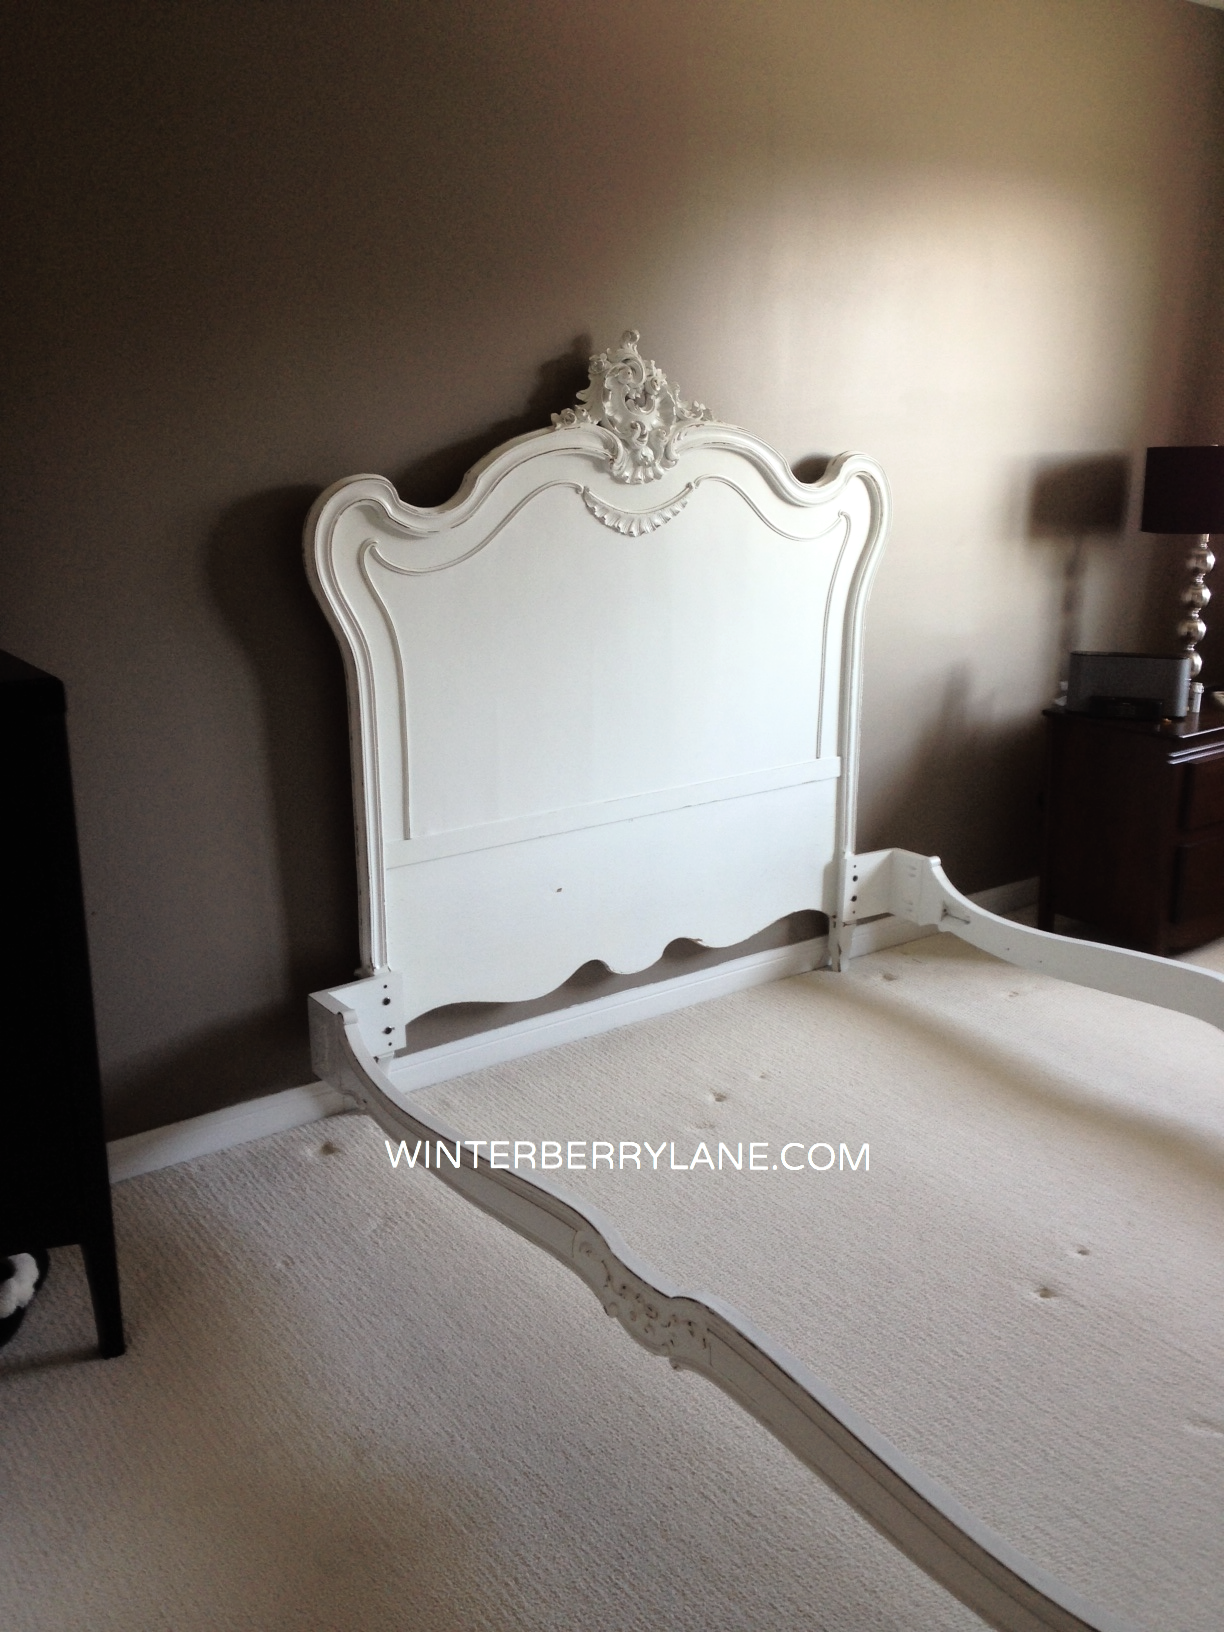 ANTIQUE FRENCH WALNUT BEDFRAME II